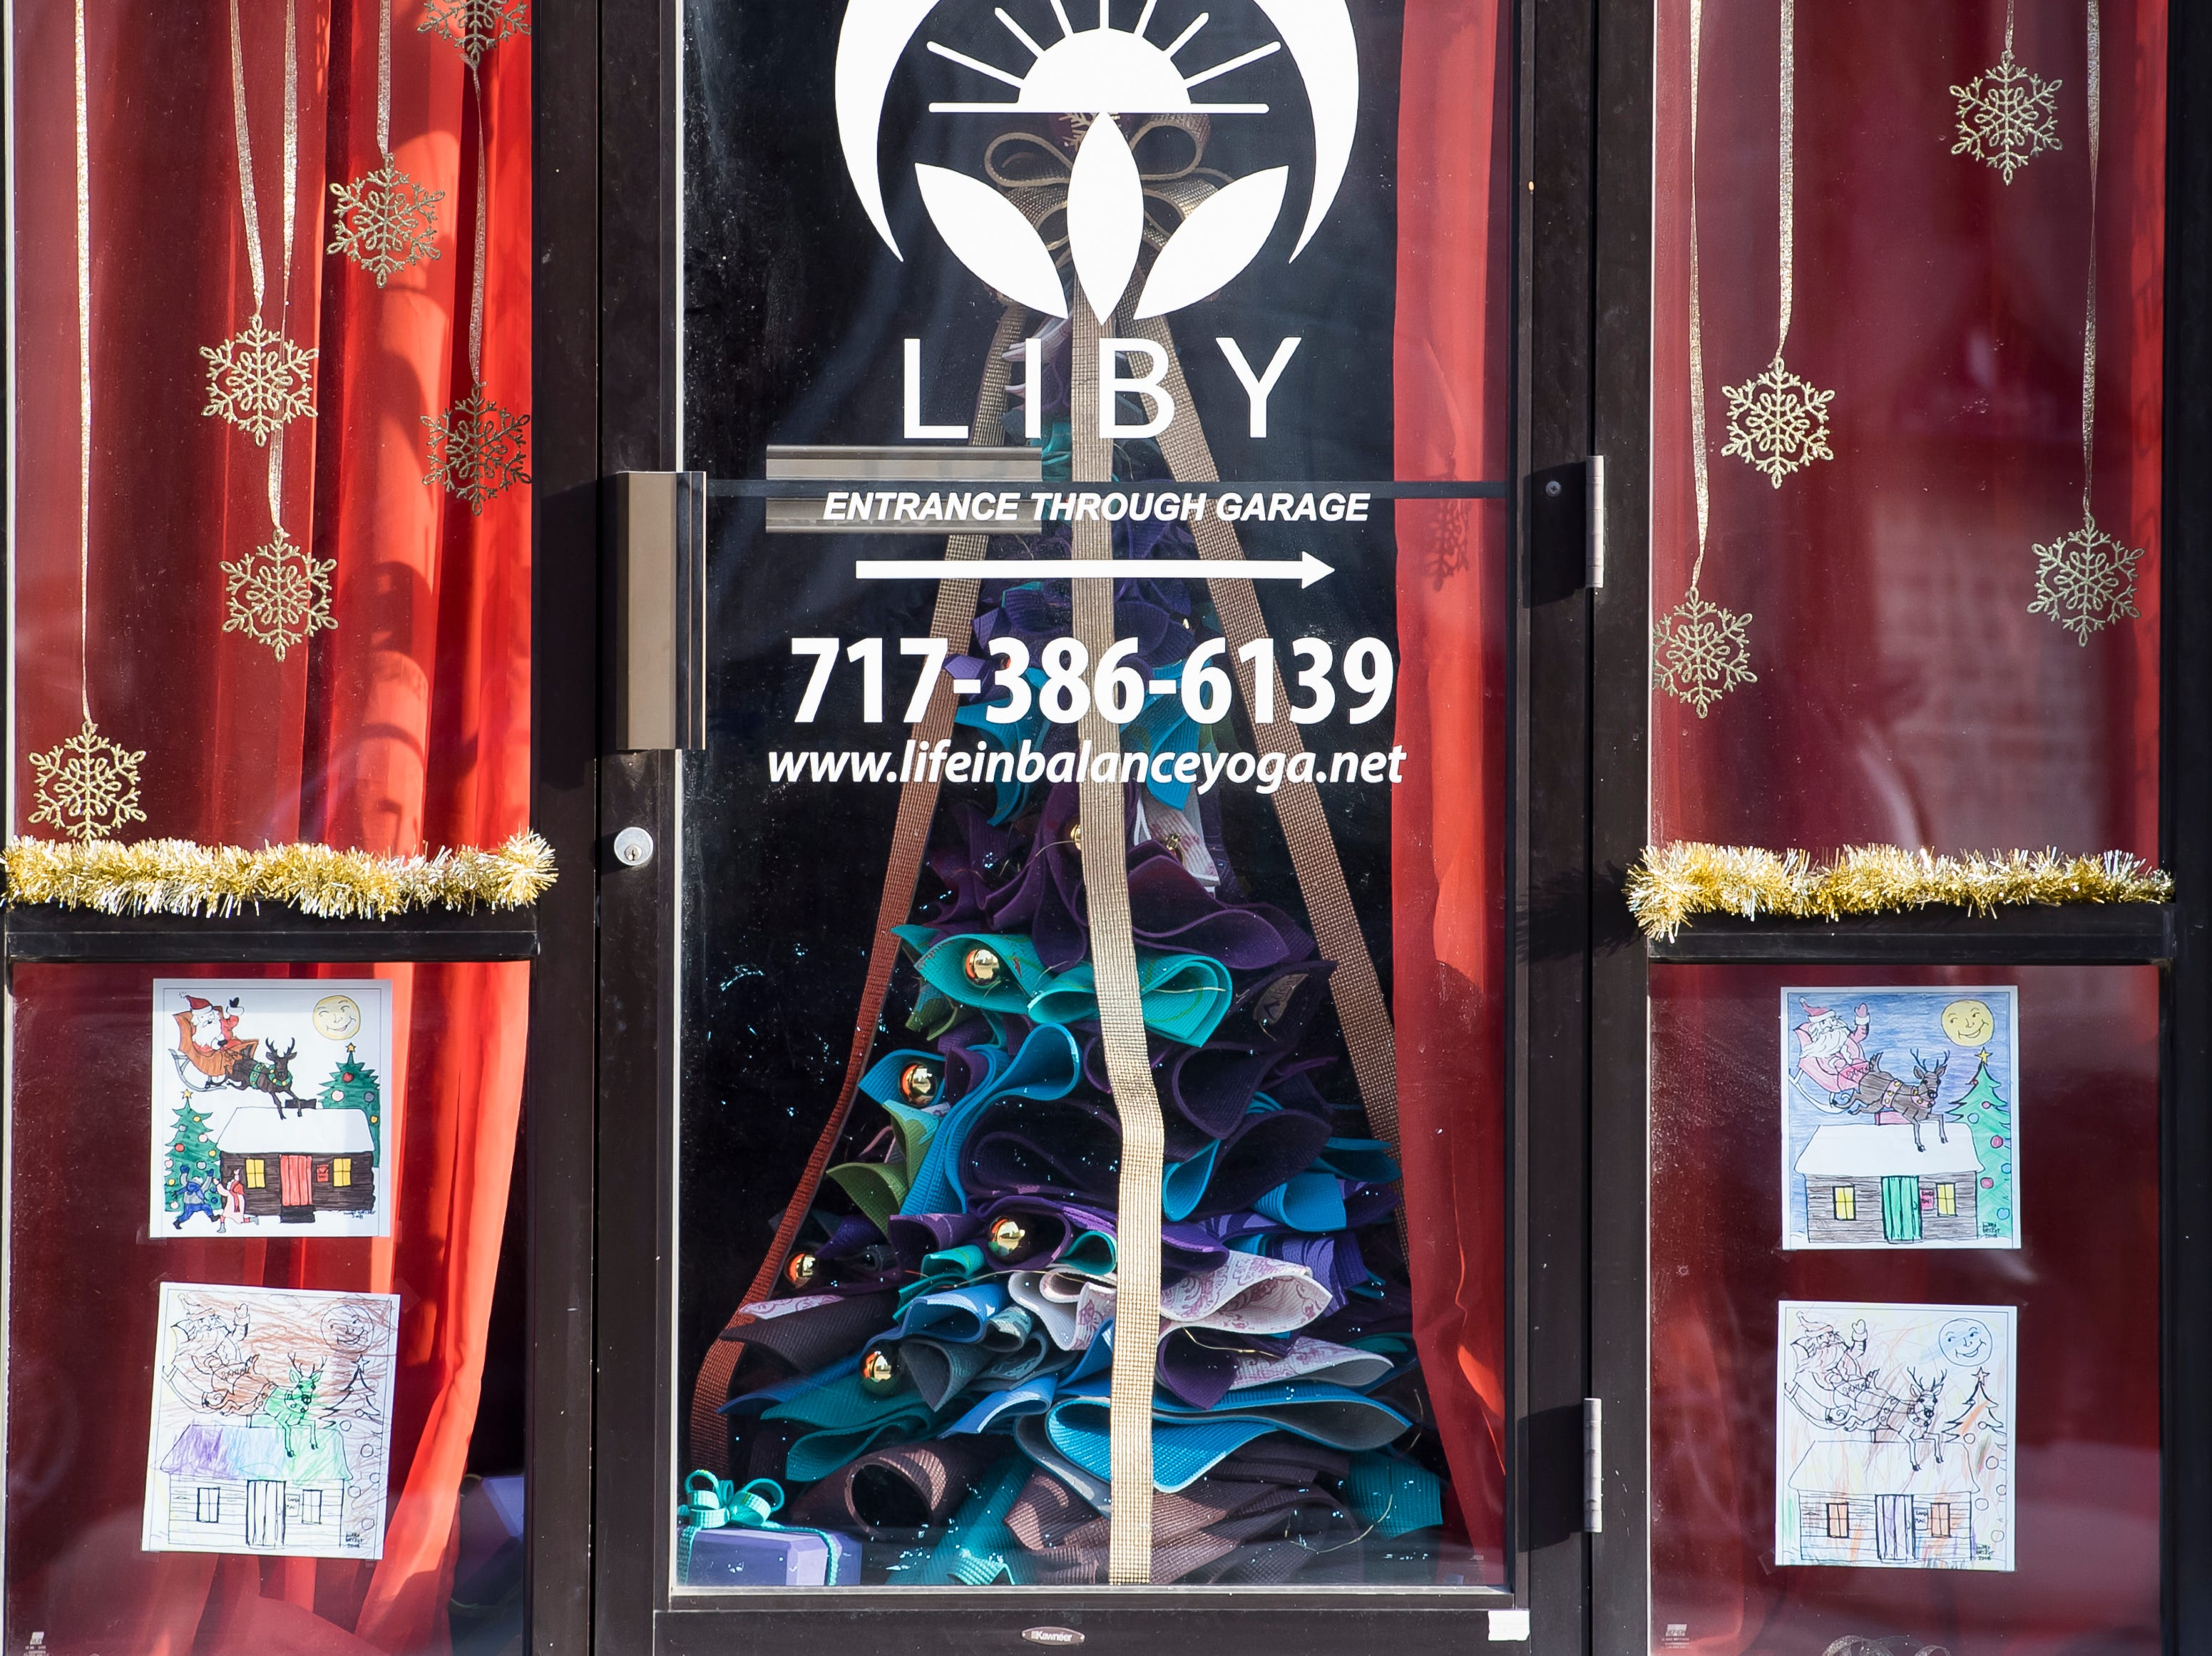 Life in Balance Yoga, Winding Willow Studio, Sisters at Wicks End and Kelly Belle Crystals located at 129 Broadway. Visit mainstreethanover.org for details about Christmas Tree Wars.